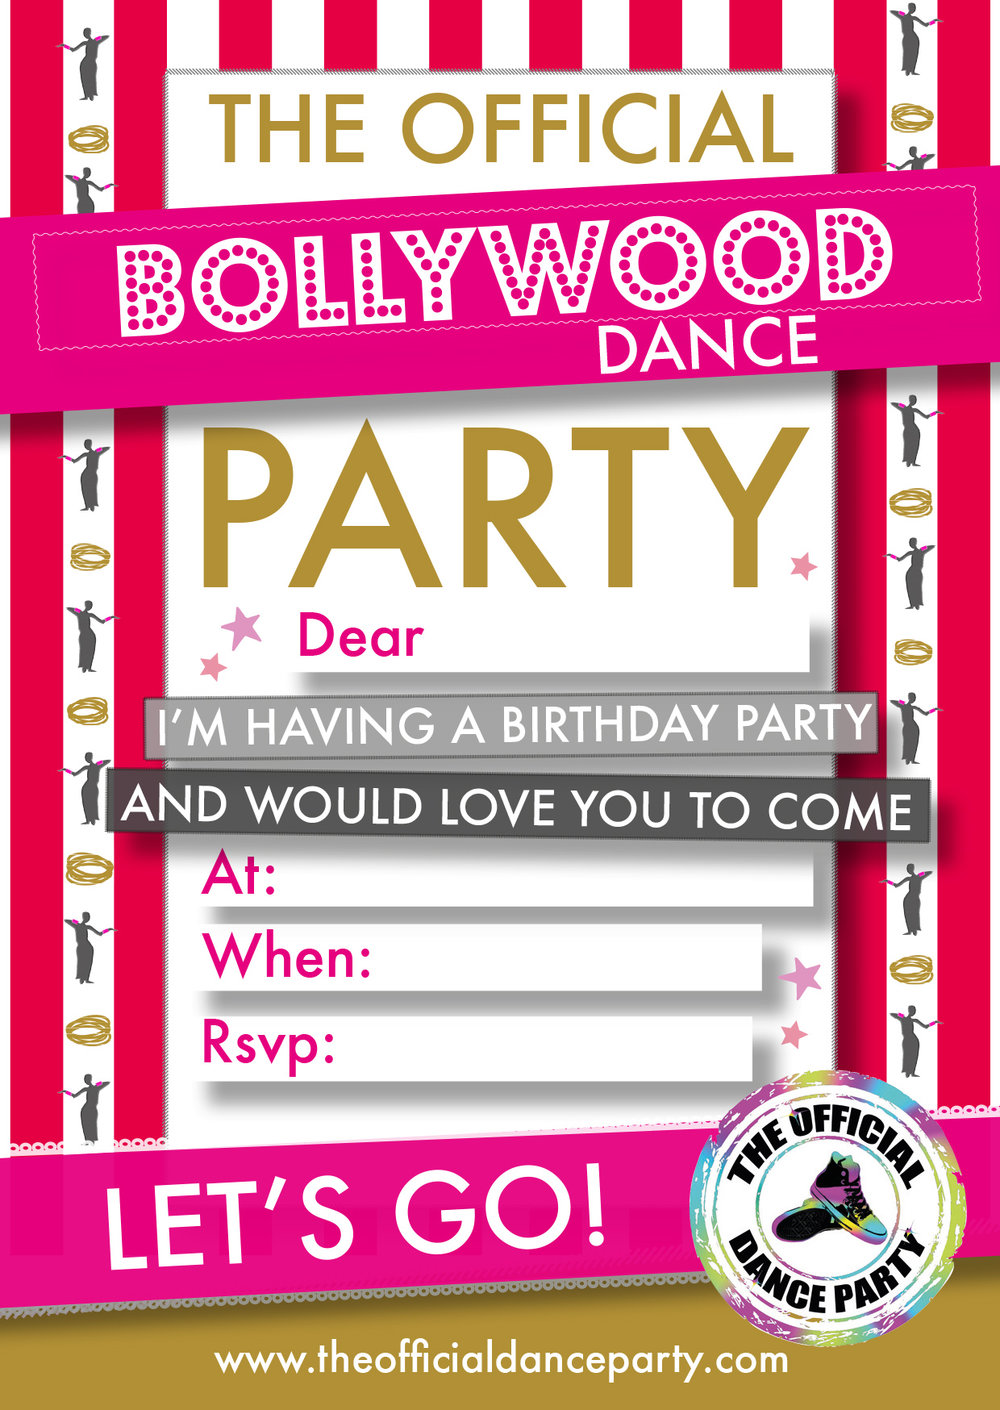 BOLLYWOOD invitation FINAL[3628318].jpg